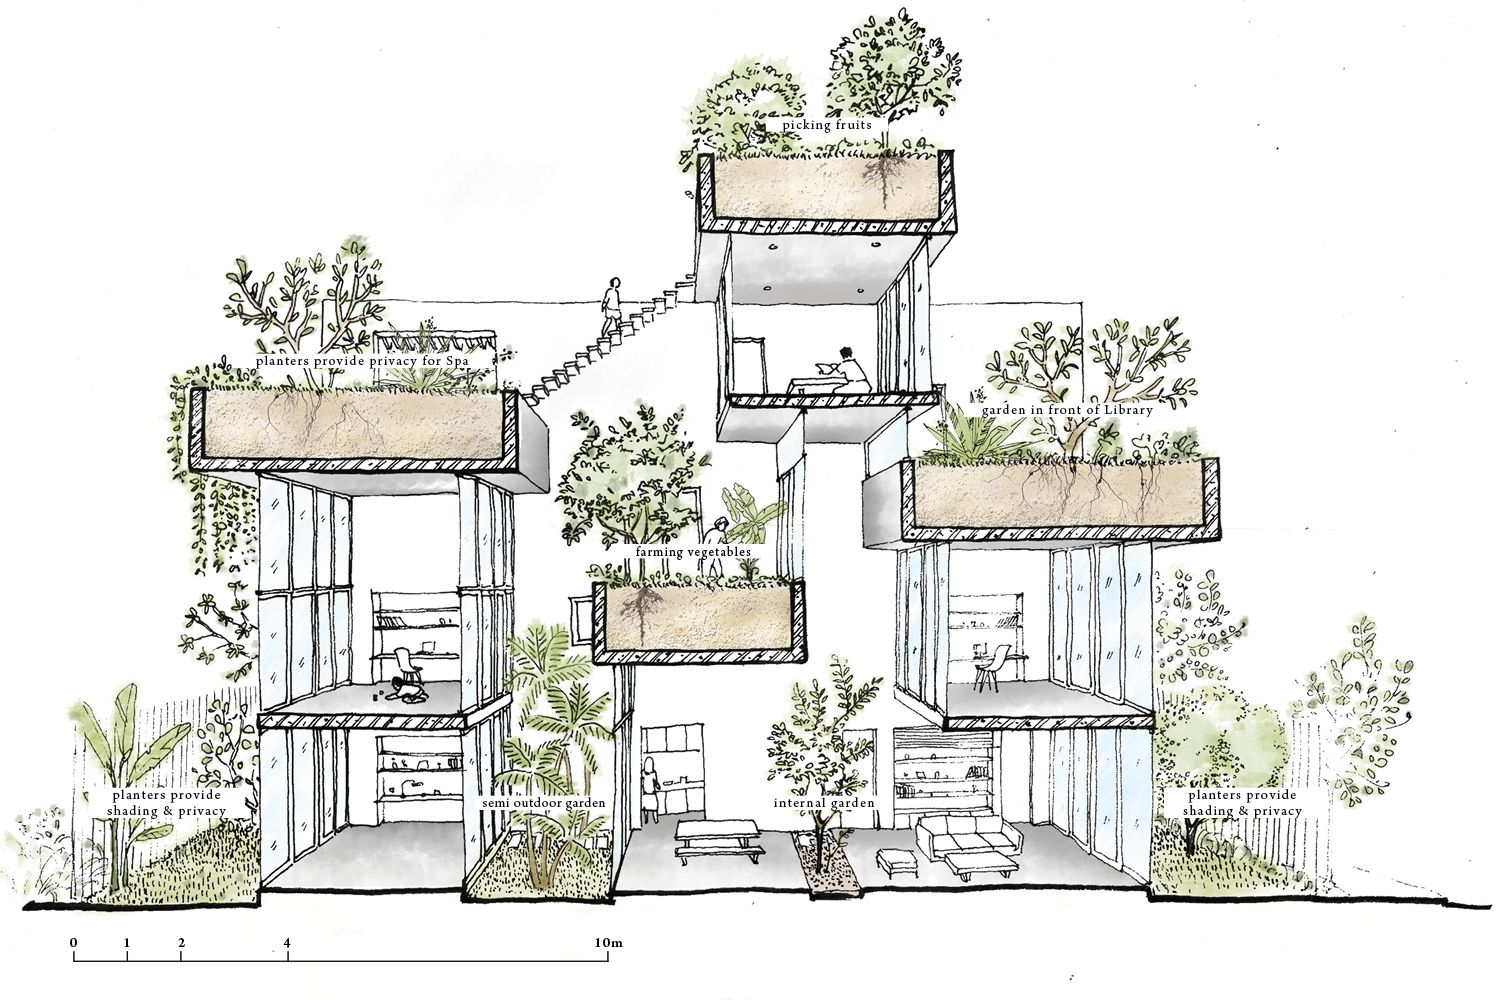 Image 21 of 21 from gallery of Binh House / VTN Architects. Perspective